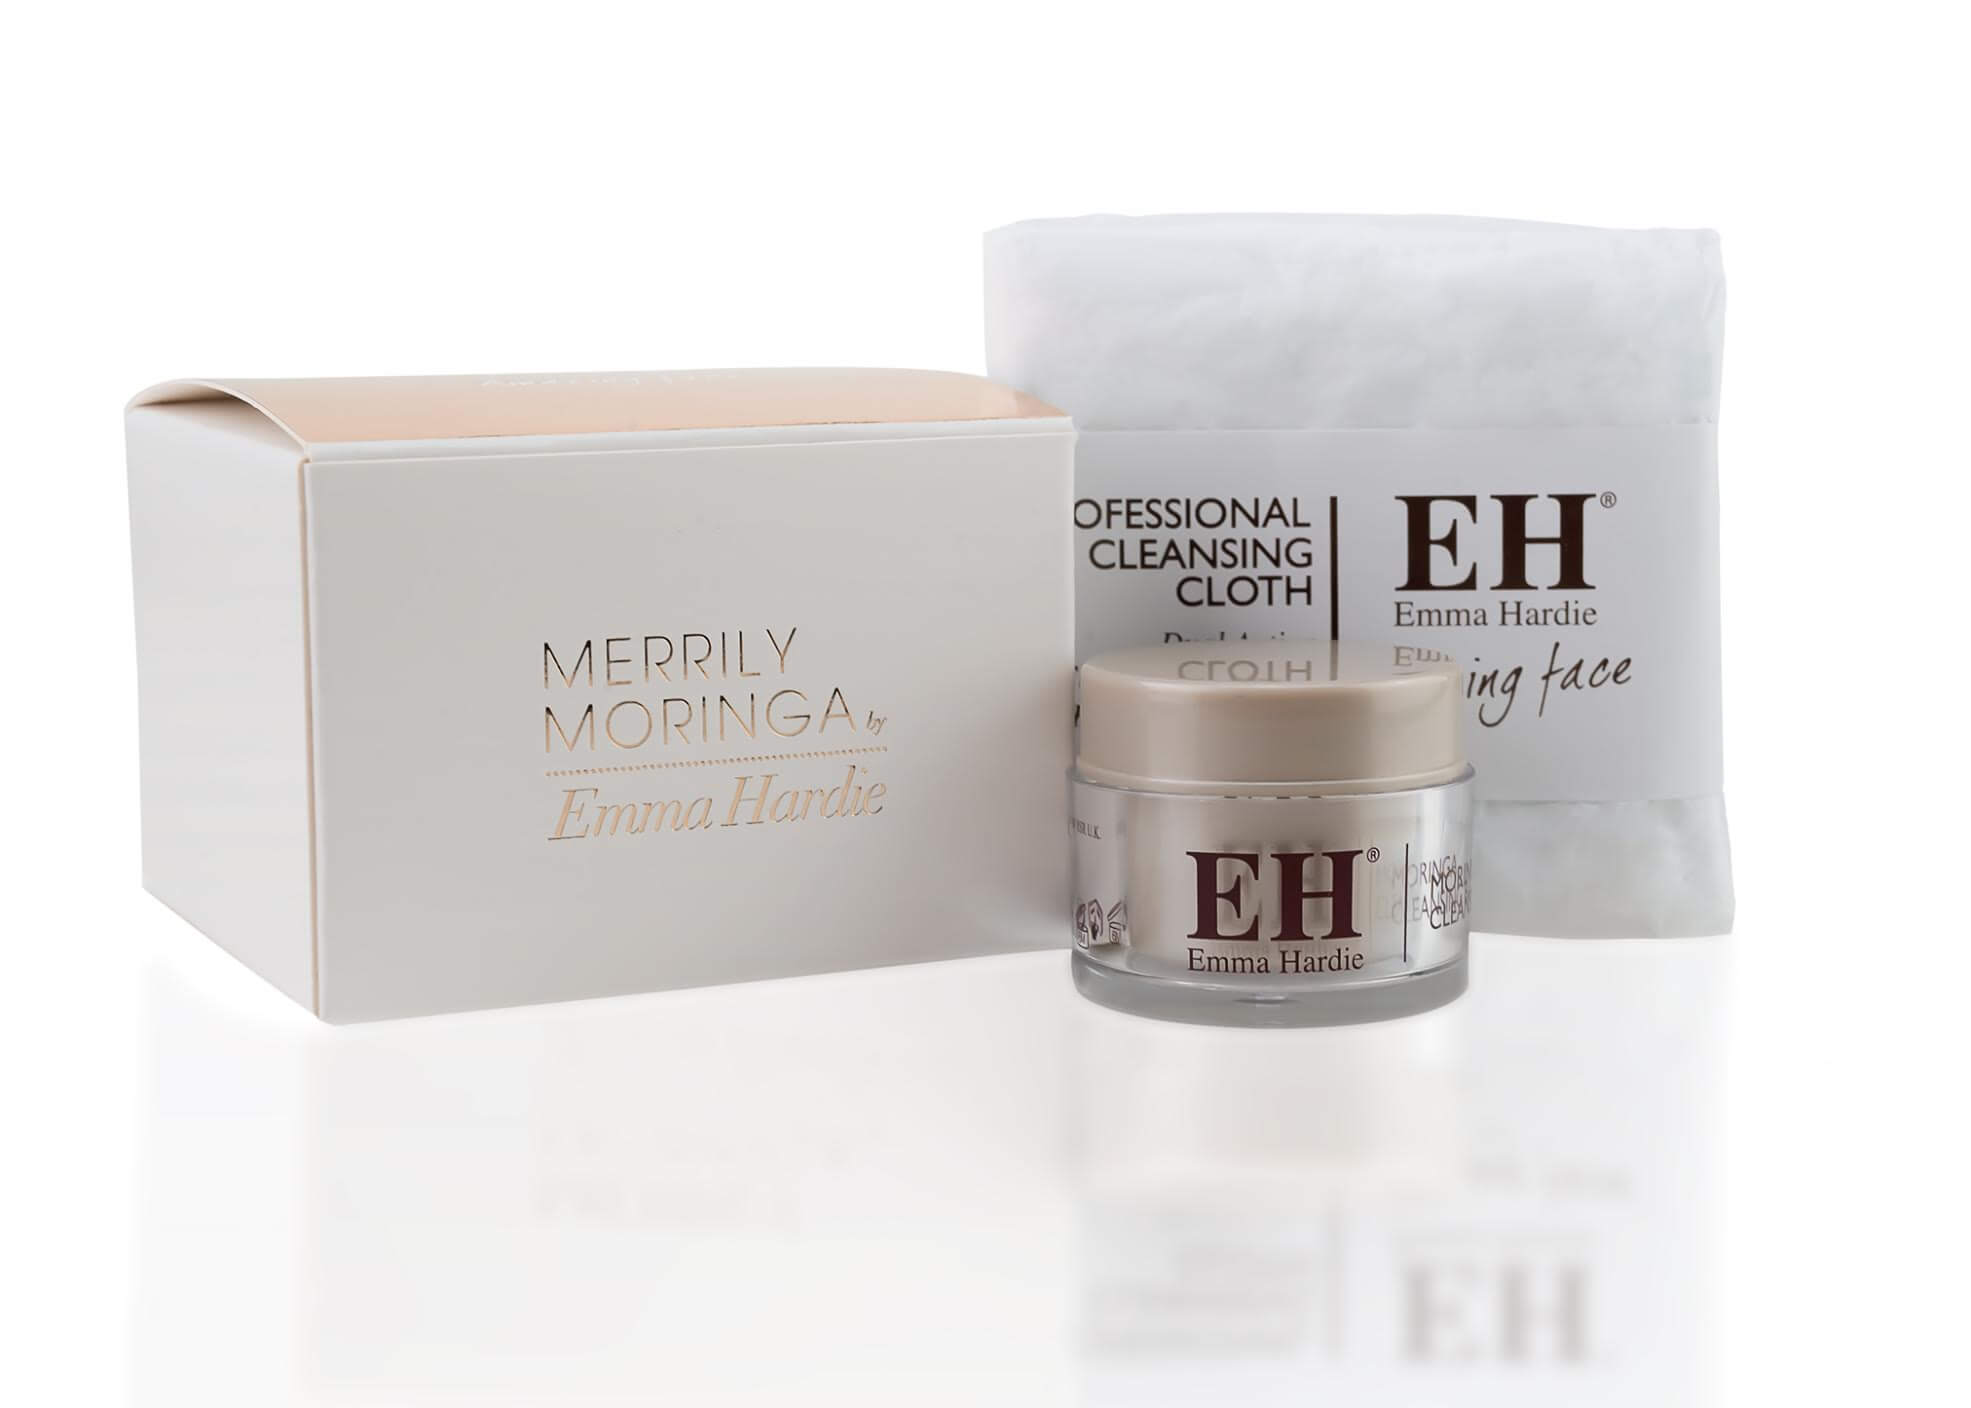 Luxury Beauty Gifts for Christmas, best Luxury Beauty Gifts for Christmas, top Luxury Beauty Gifts for Christmas, beauty gift sets for Christmas